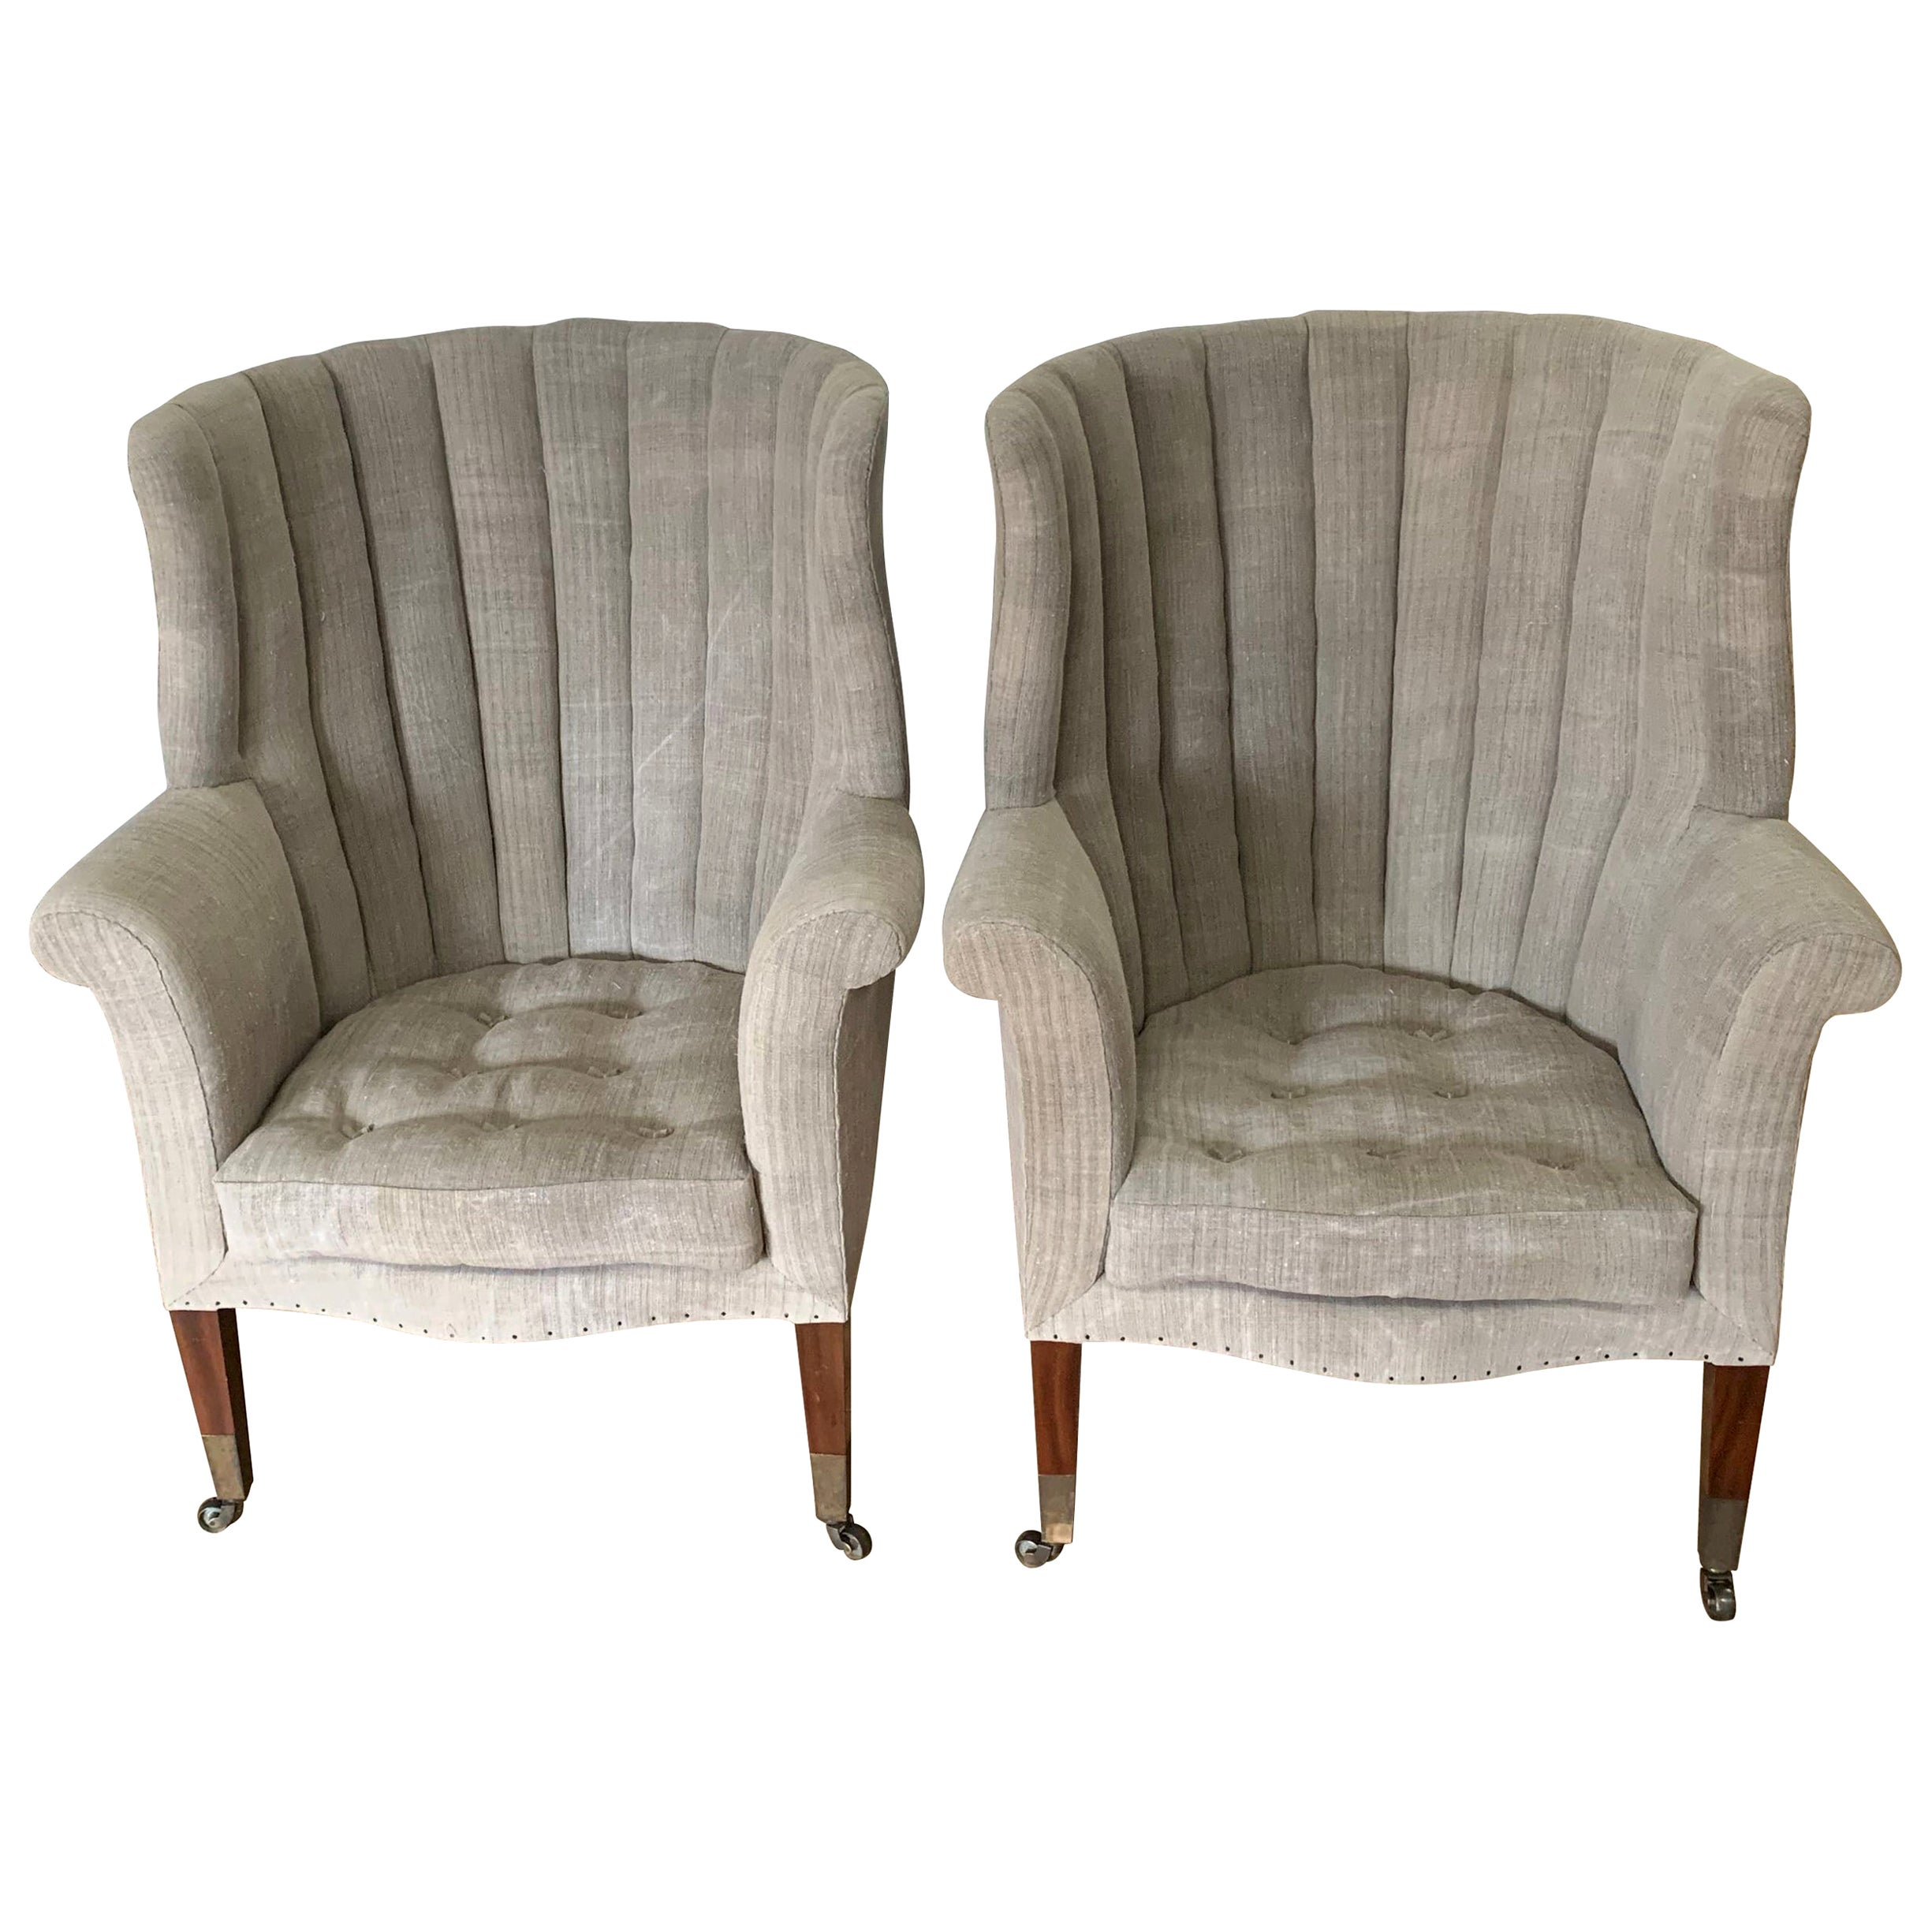 Pair of Upholstered Armchairs, Barrel Back, England, 19th Century